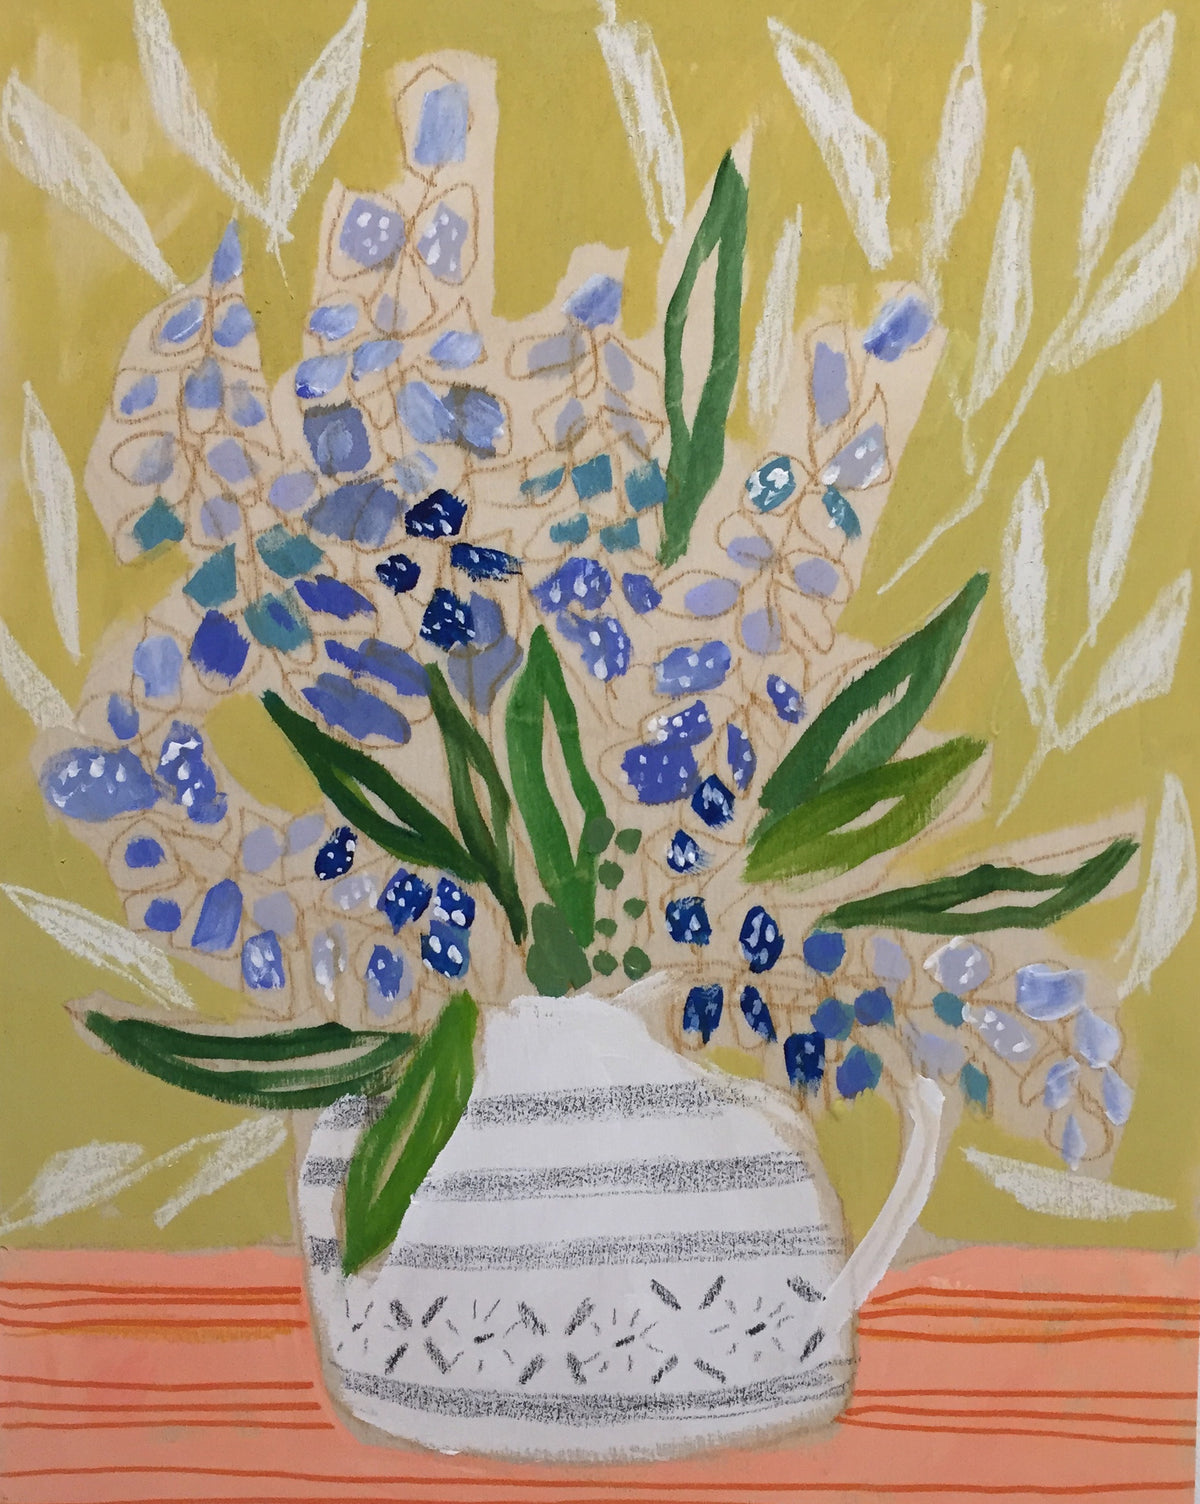 STATE FLOWER OF TEXAS - FLOWERS FOR BIZZY - 11x14